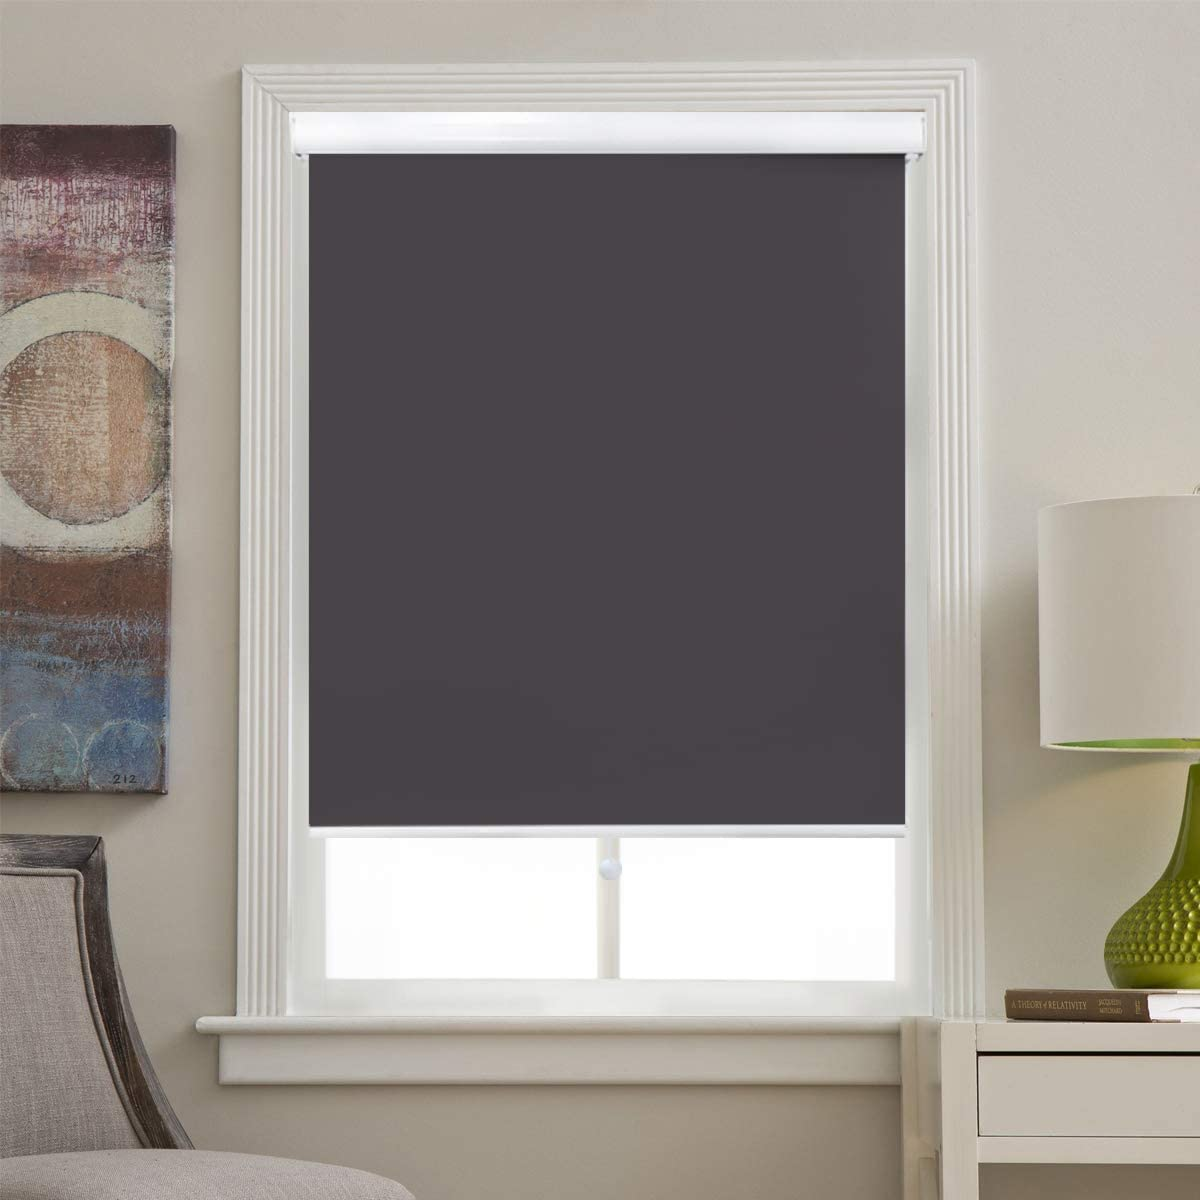 Pull Down Blinds Cordless 100% Blackout Roller Shade for Home & Office 38x72, Grey